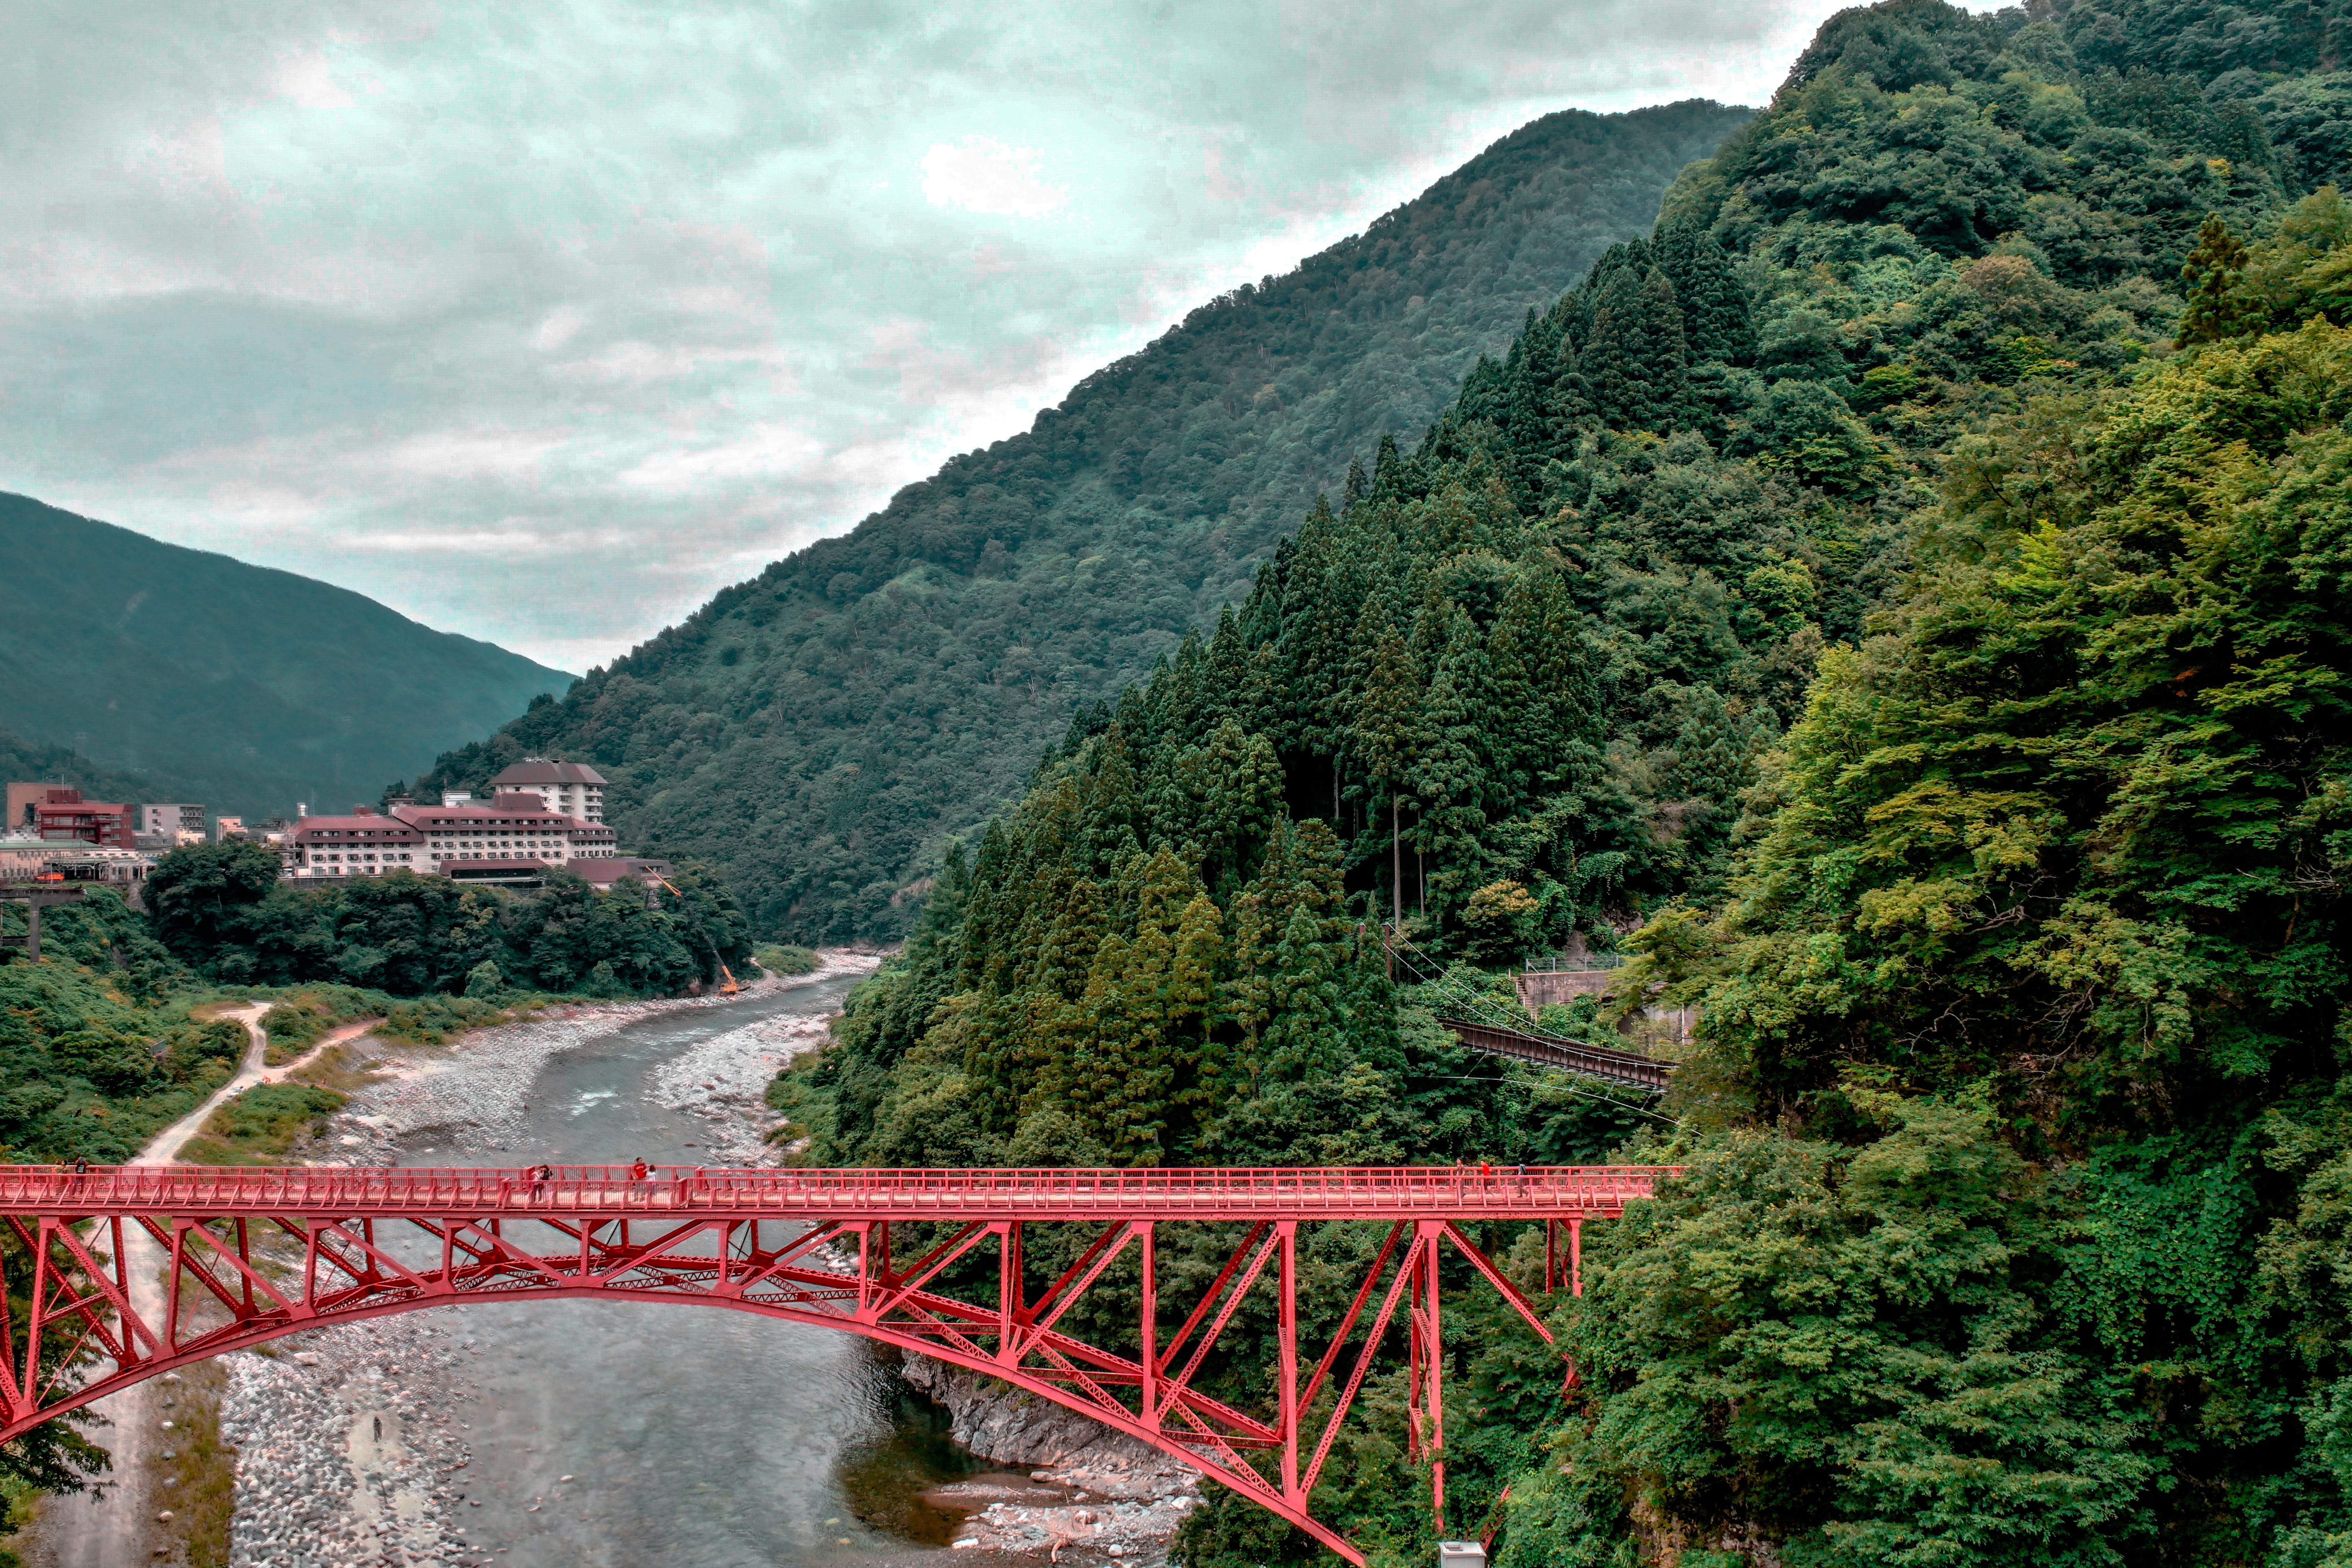 Hanging Bridge and View of Mountains